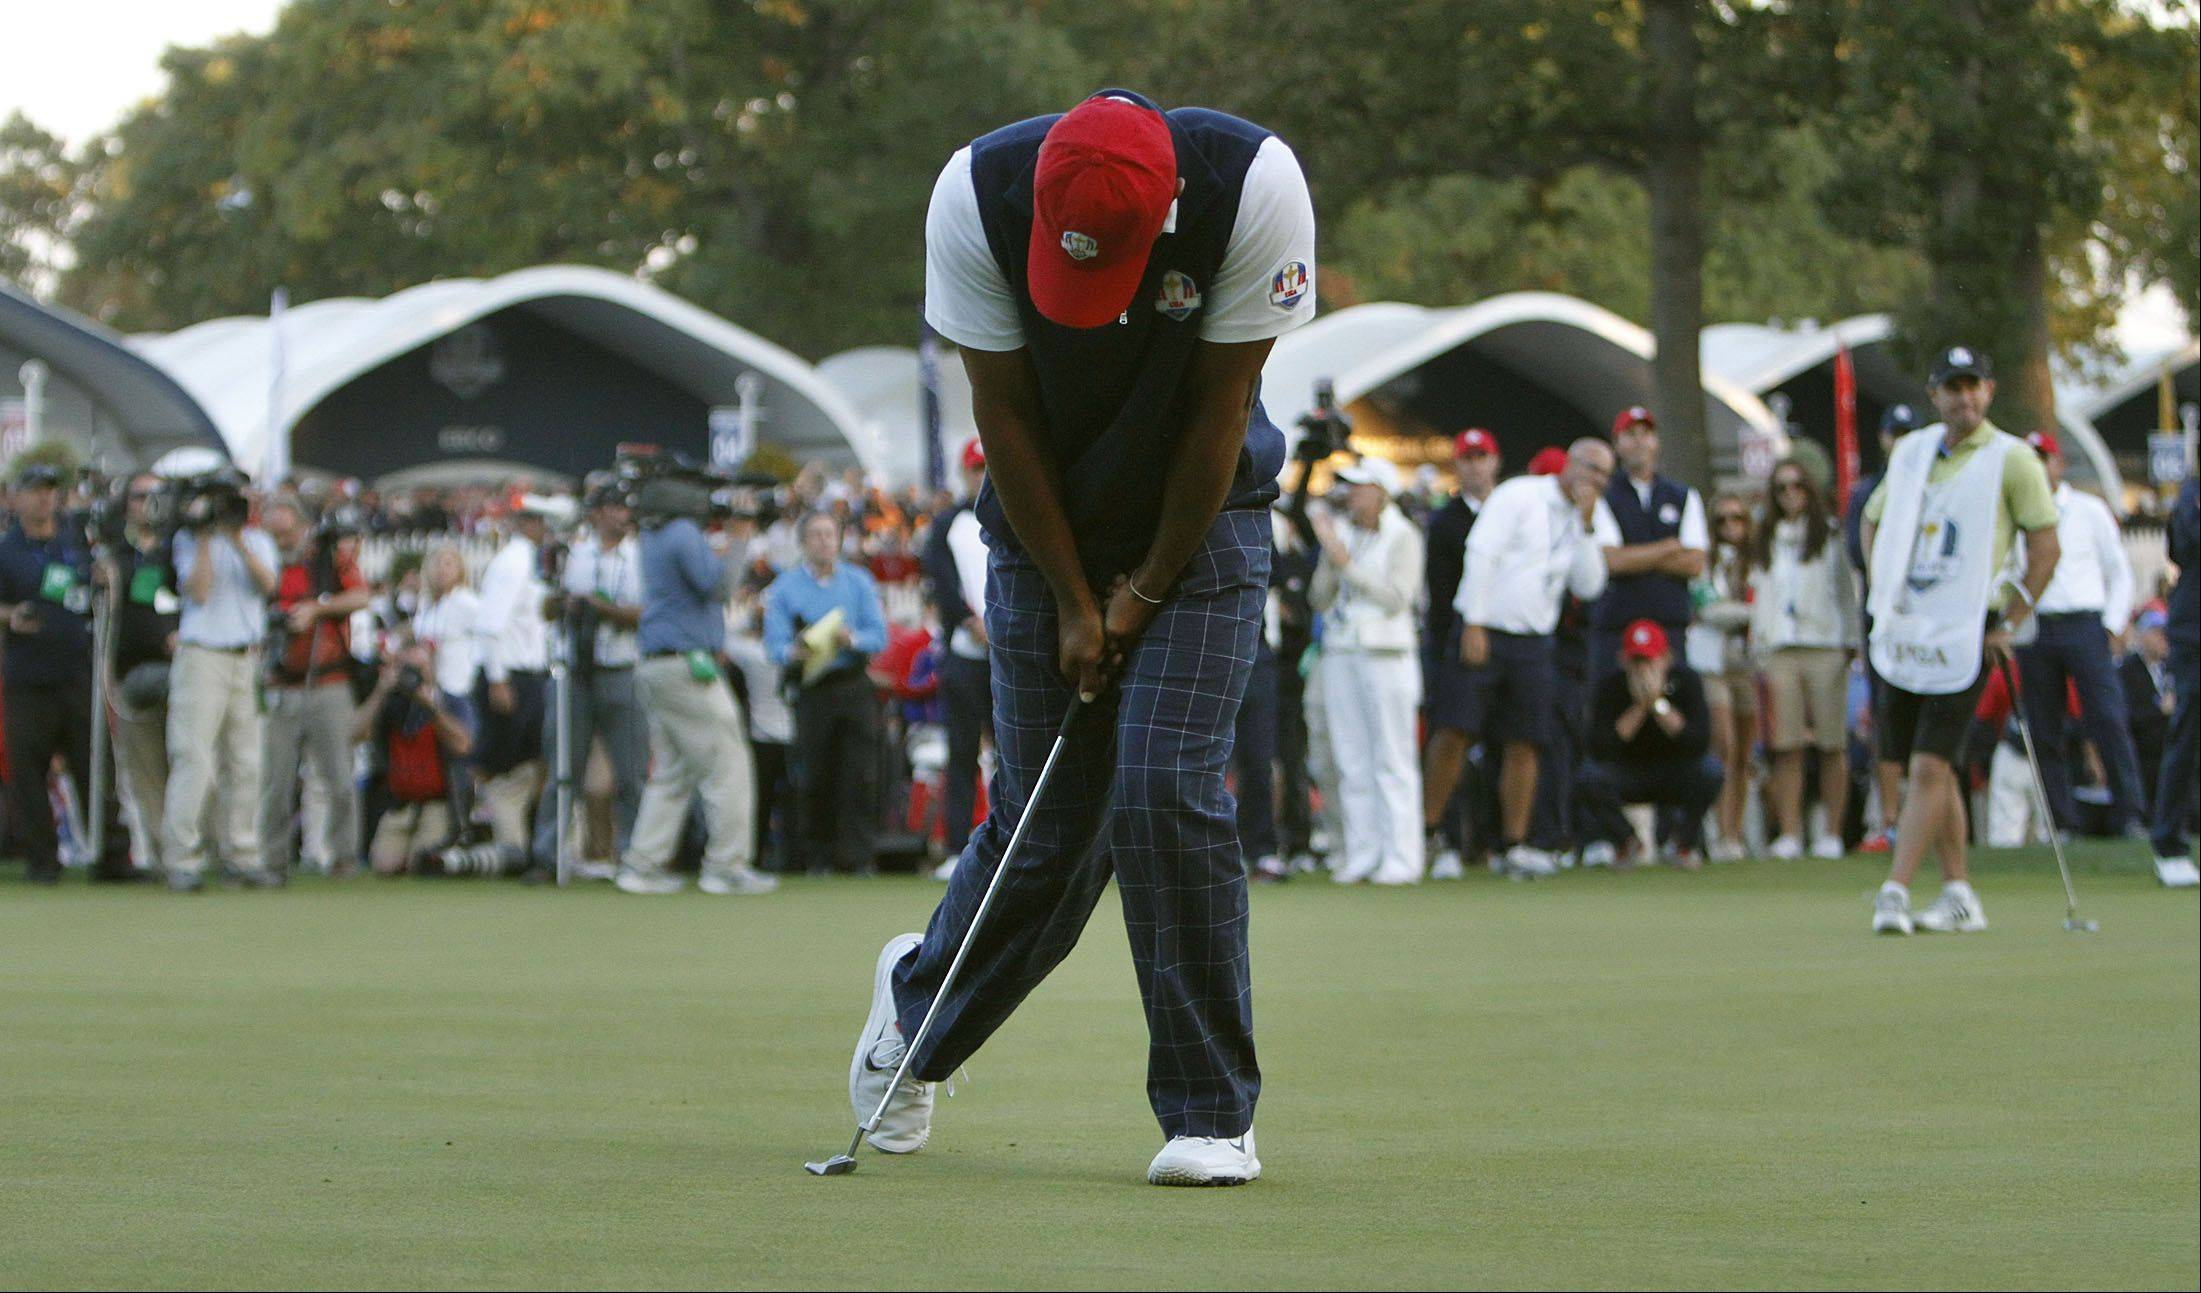 Tiger Woods hangs his head in disbelief after narrowly missing a birdie putt on No. 18 during Friday's Ryder Cup at Medinah.